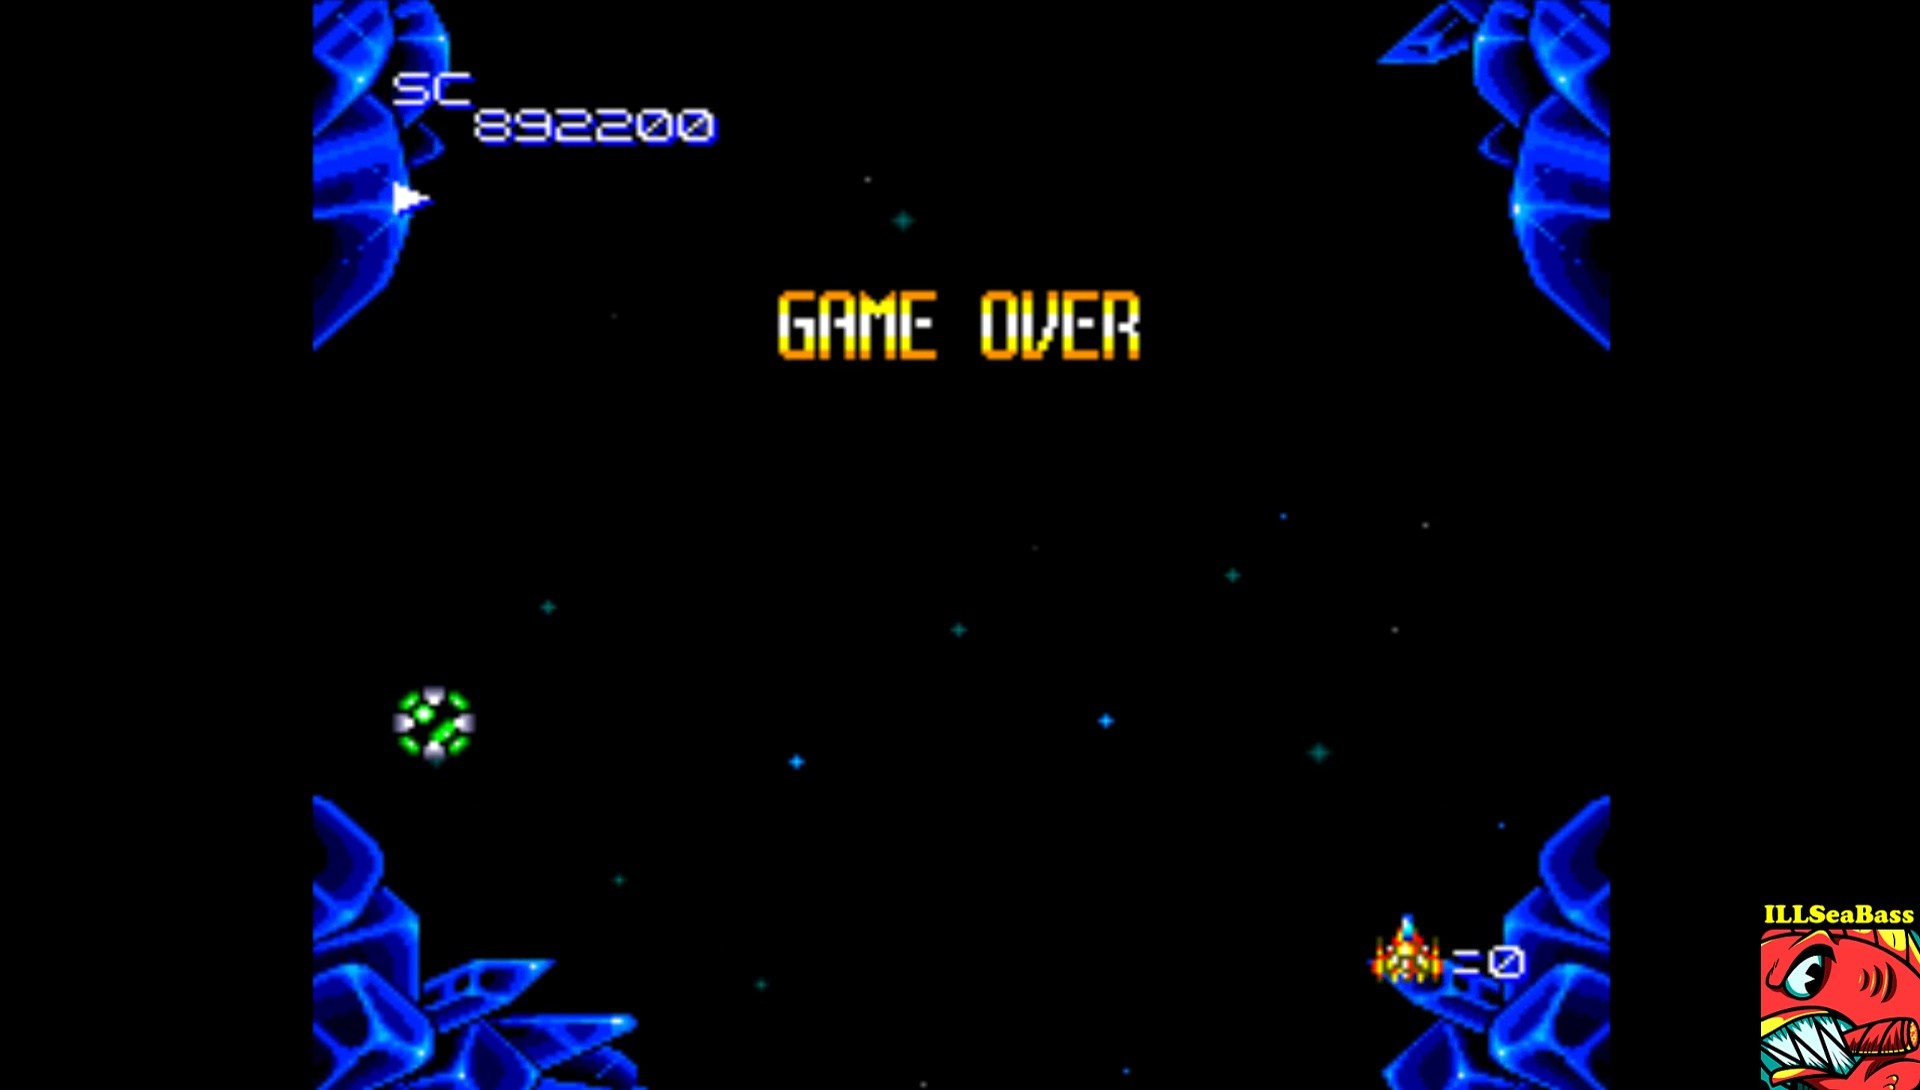 ILLSeaBass: Super Star Soldier (TurboGrafx-16/PC Engine Emulated) 892,200 points on 2017-06-19 16:11:09